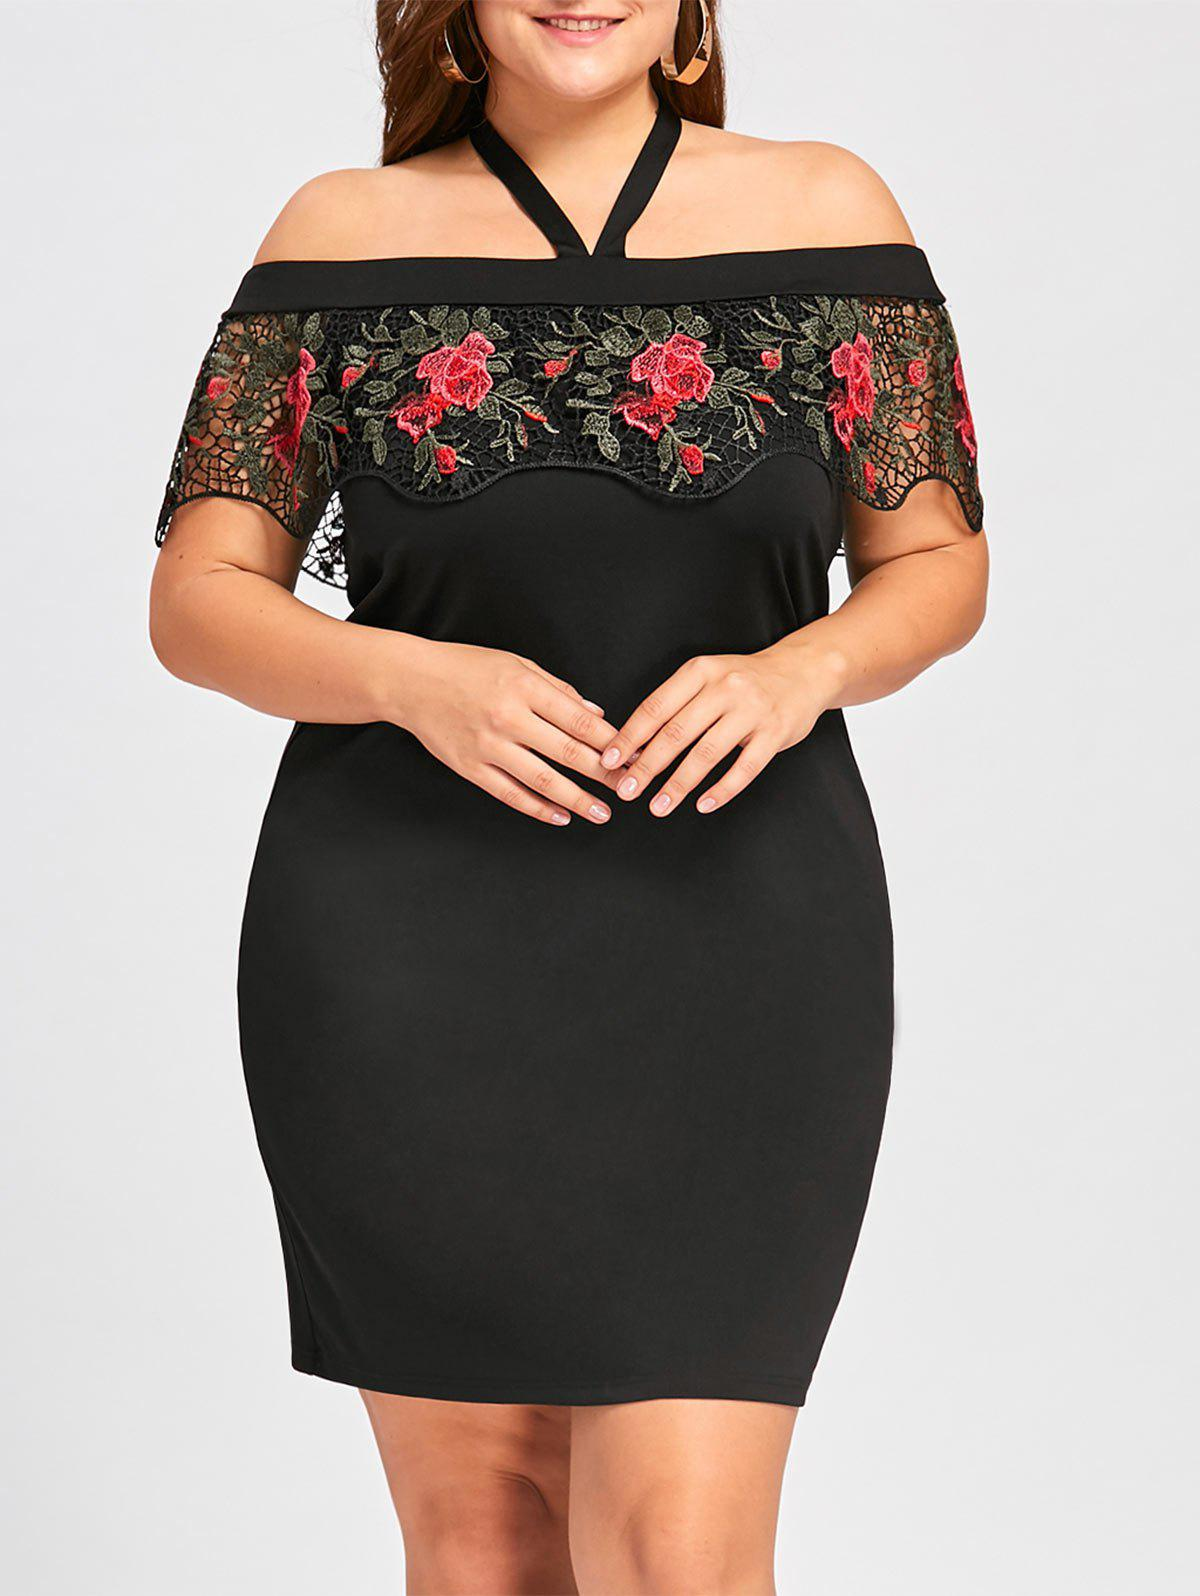 Plus Size Halter Embroidery Mini Tight DressWOMEN<br><br>Size: XL; Color: BLACK; Style: Brief; Material: Polyester,Spandex; Silhouette: Sheath; Dresses Length: Mini; Neckline: Halter; Sleeve Length: Short Sleeves; Embellishment: Embroidery,Lace; Pattern Type: Floral; With Belt: No; Season: Fall,Spring,Summer; Weight: 0.3100kg; Package Contents: 1 x Dress;